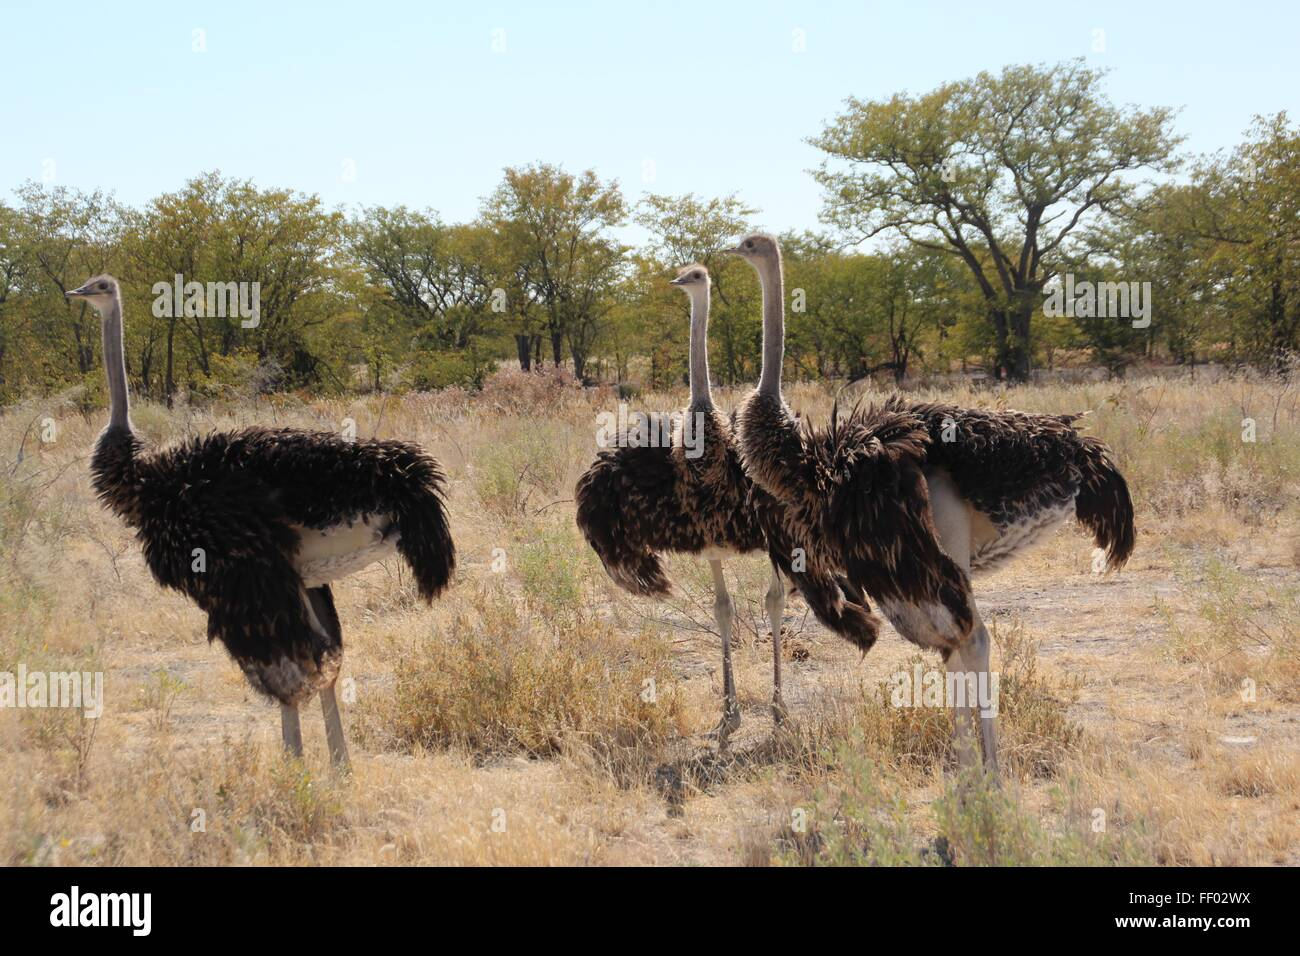 3 Ostriches stand fanning themselves in the African sun - Stock Image